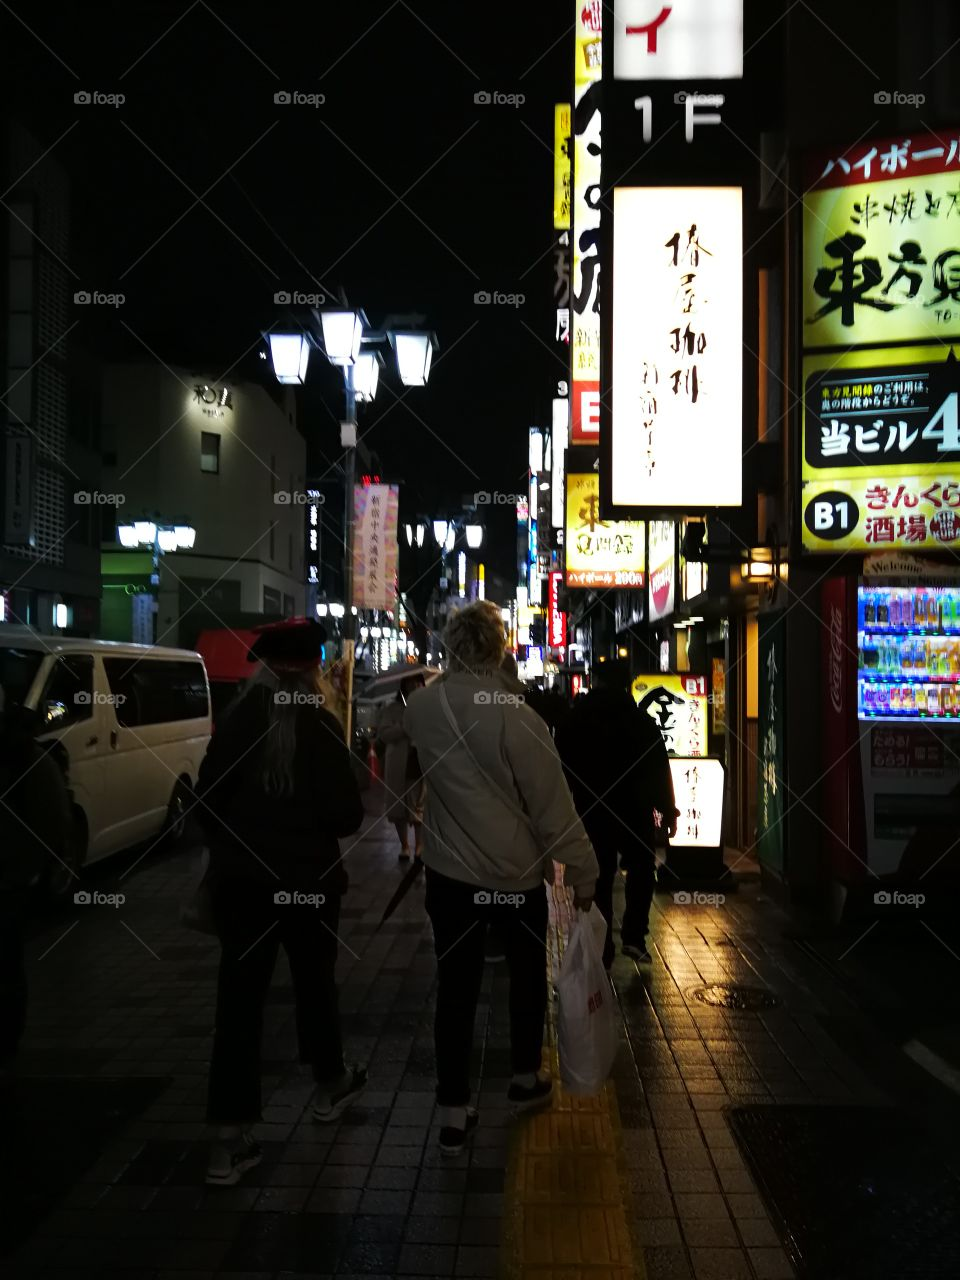 Walking in the streets of Tokyo